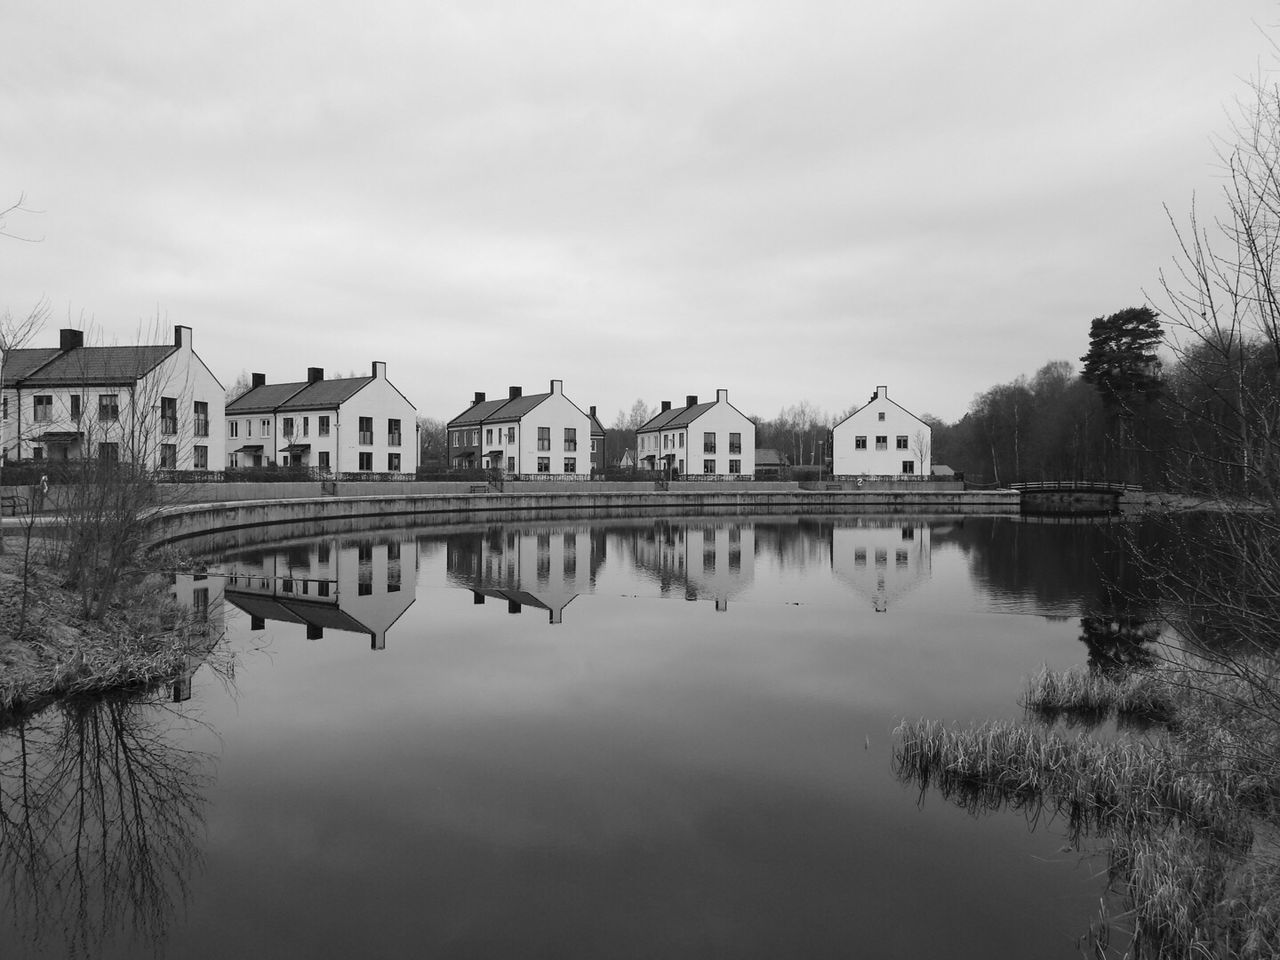 built structure, architecture, building exterior, water, house, reflection, waterfront, outdoors, lake, sky, day, no people, town, nature